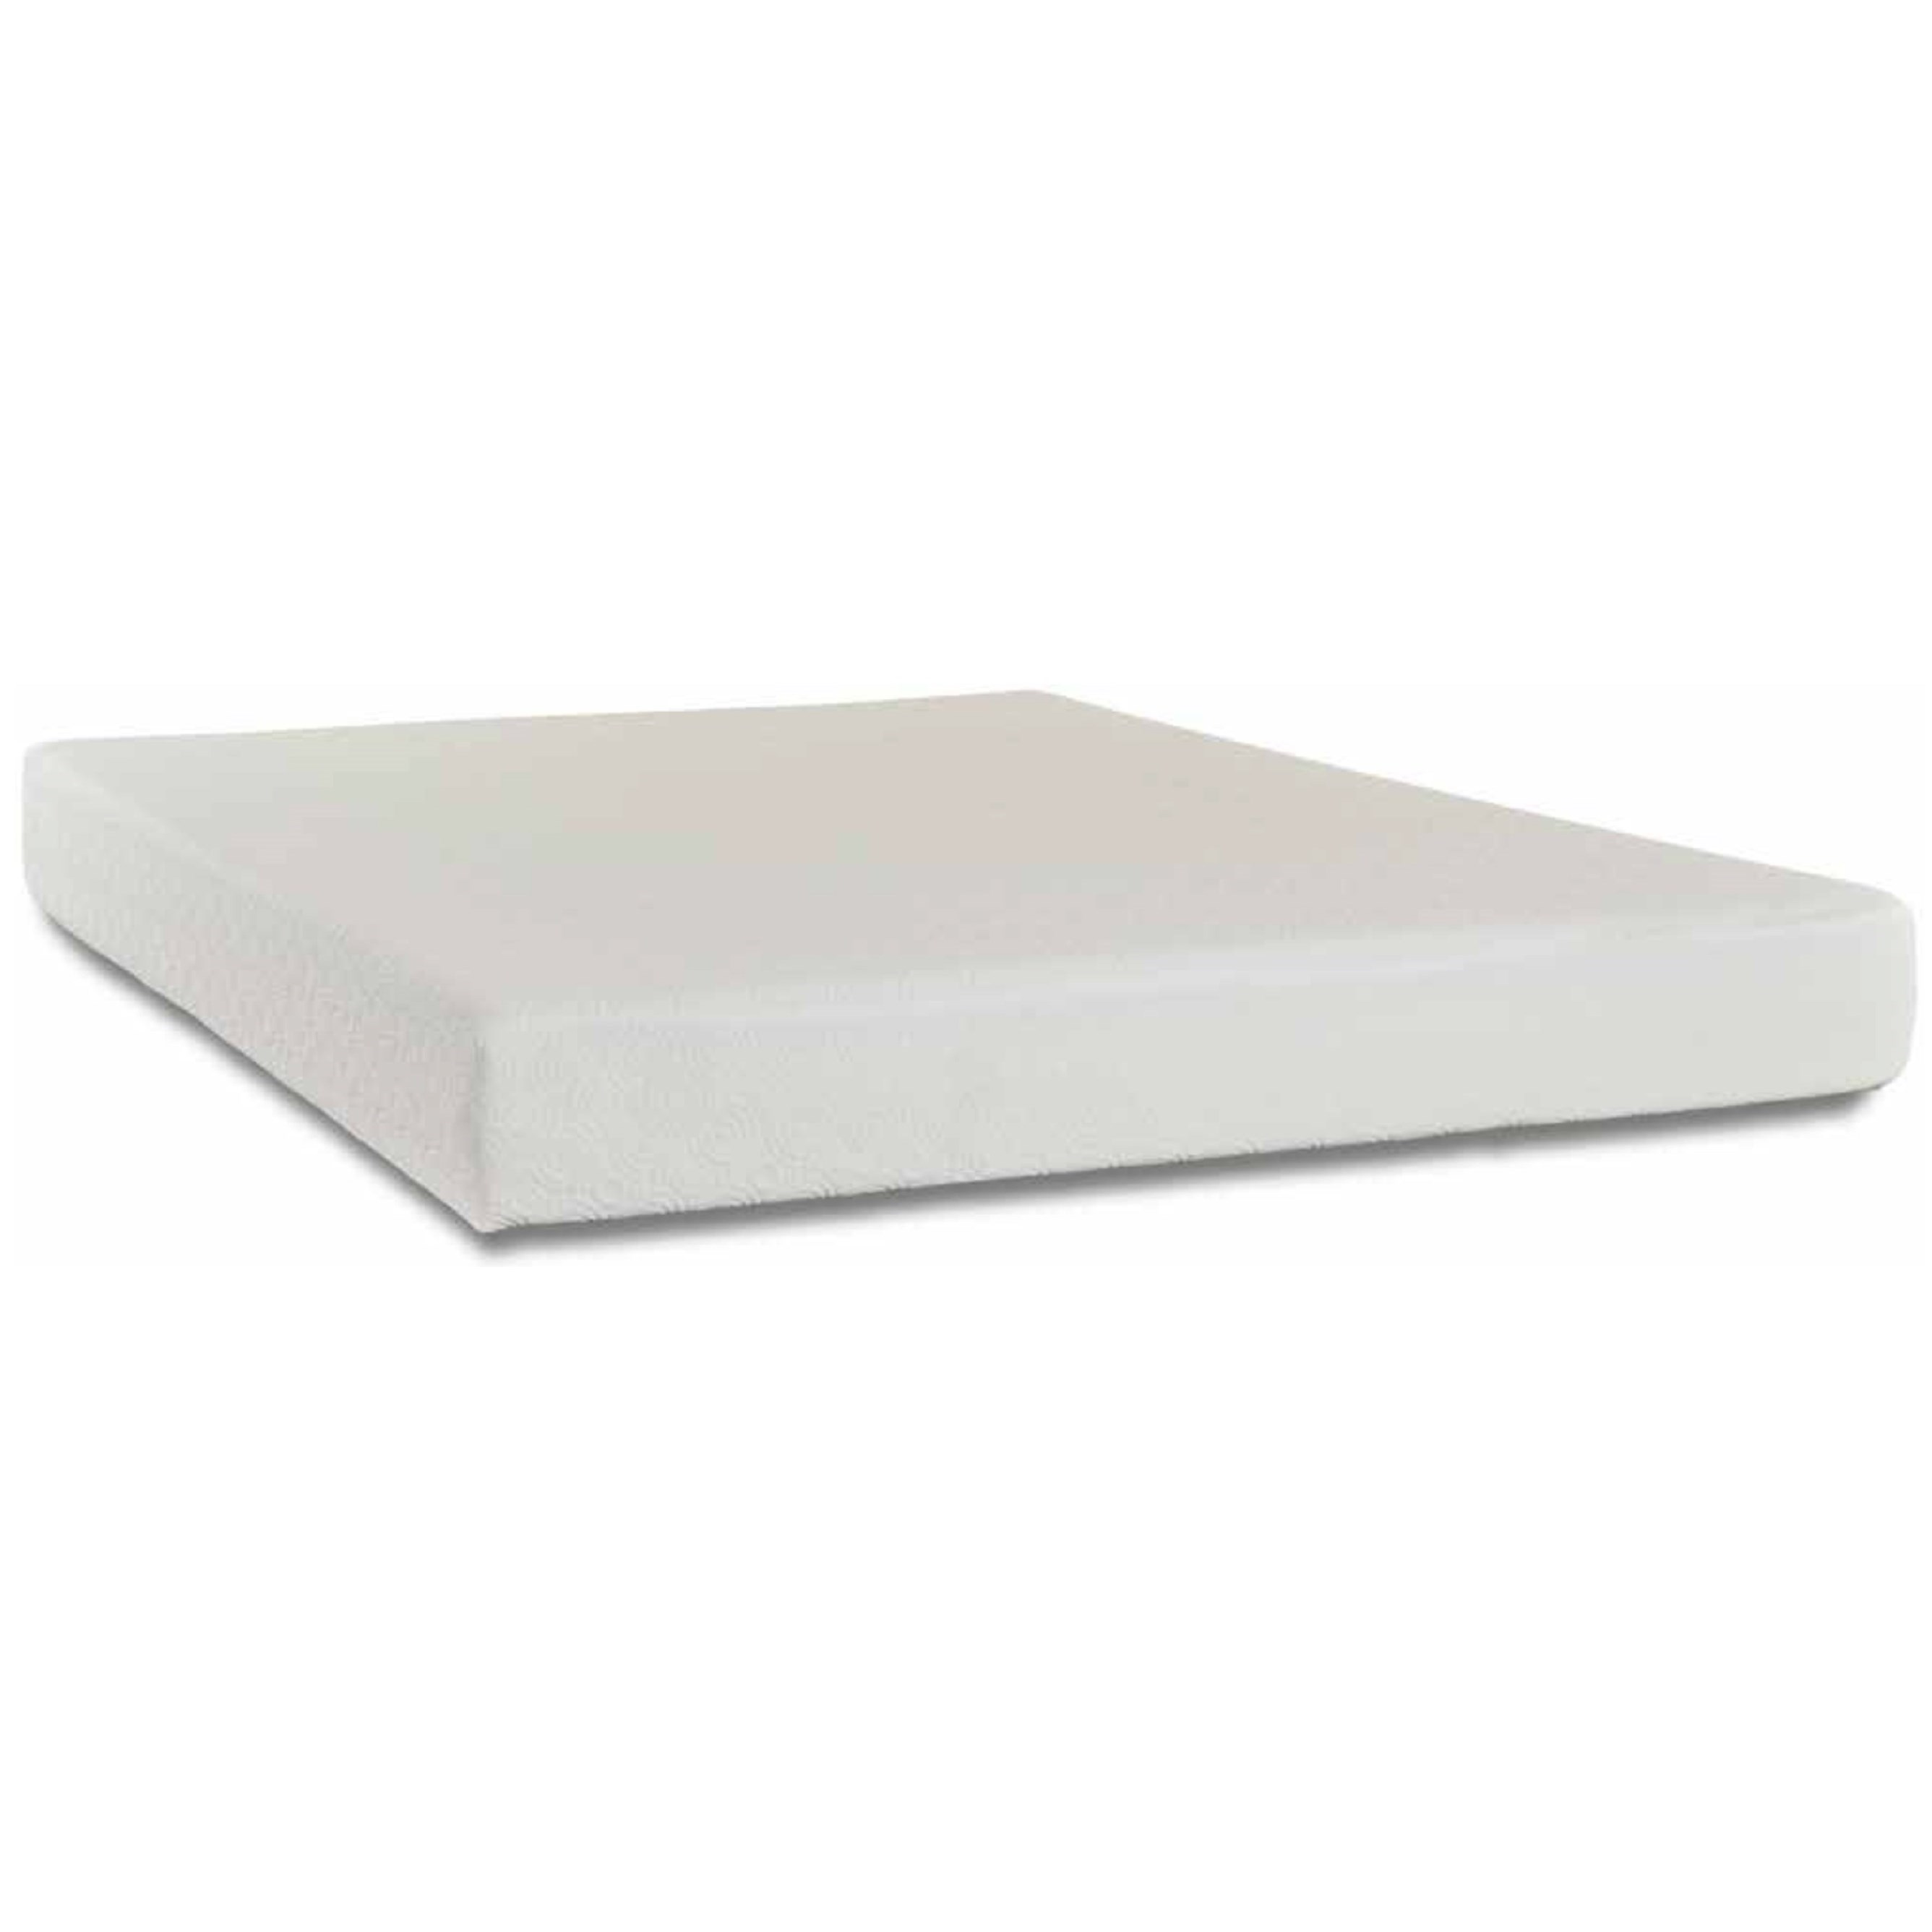 """Allure 8 Cal King 8"""" Gel Memory Foam Mattress by Enso Sleep Systems at EFO Furniture Outlet"""